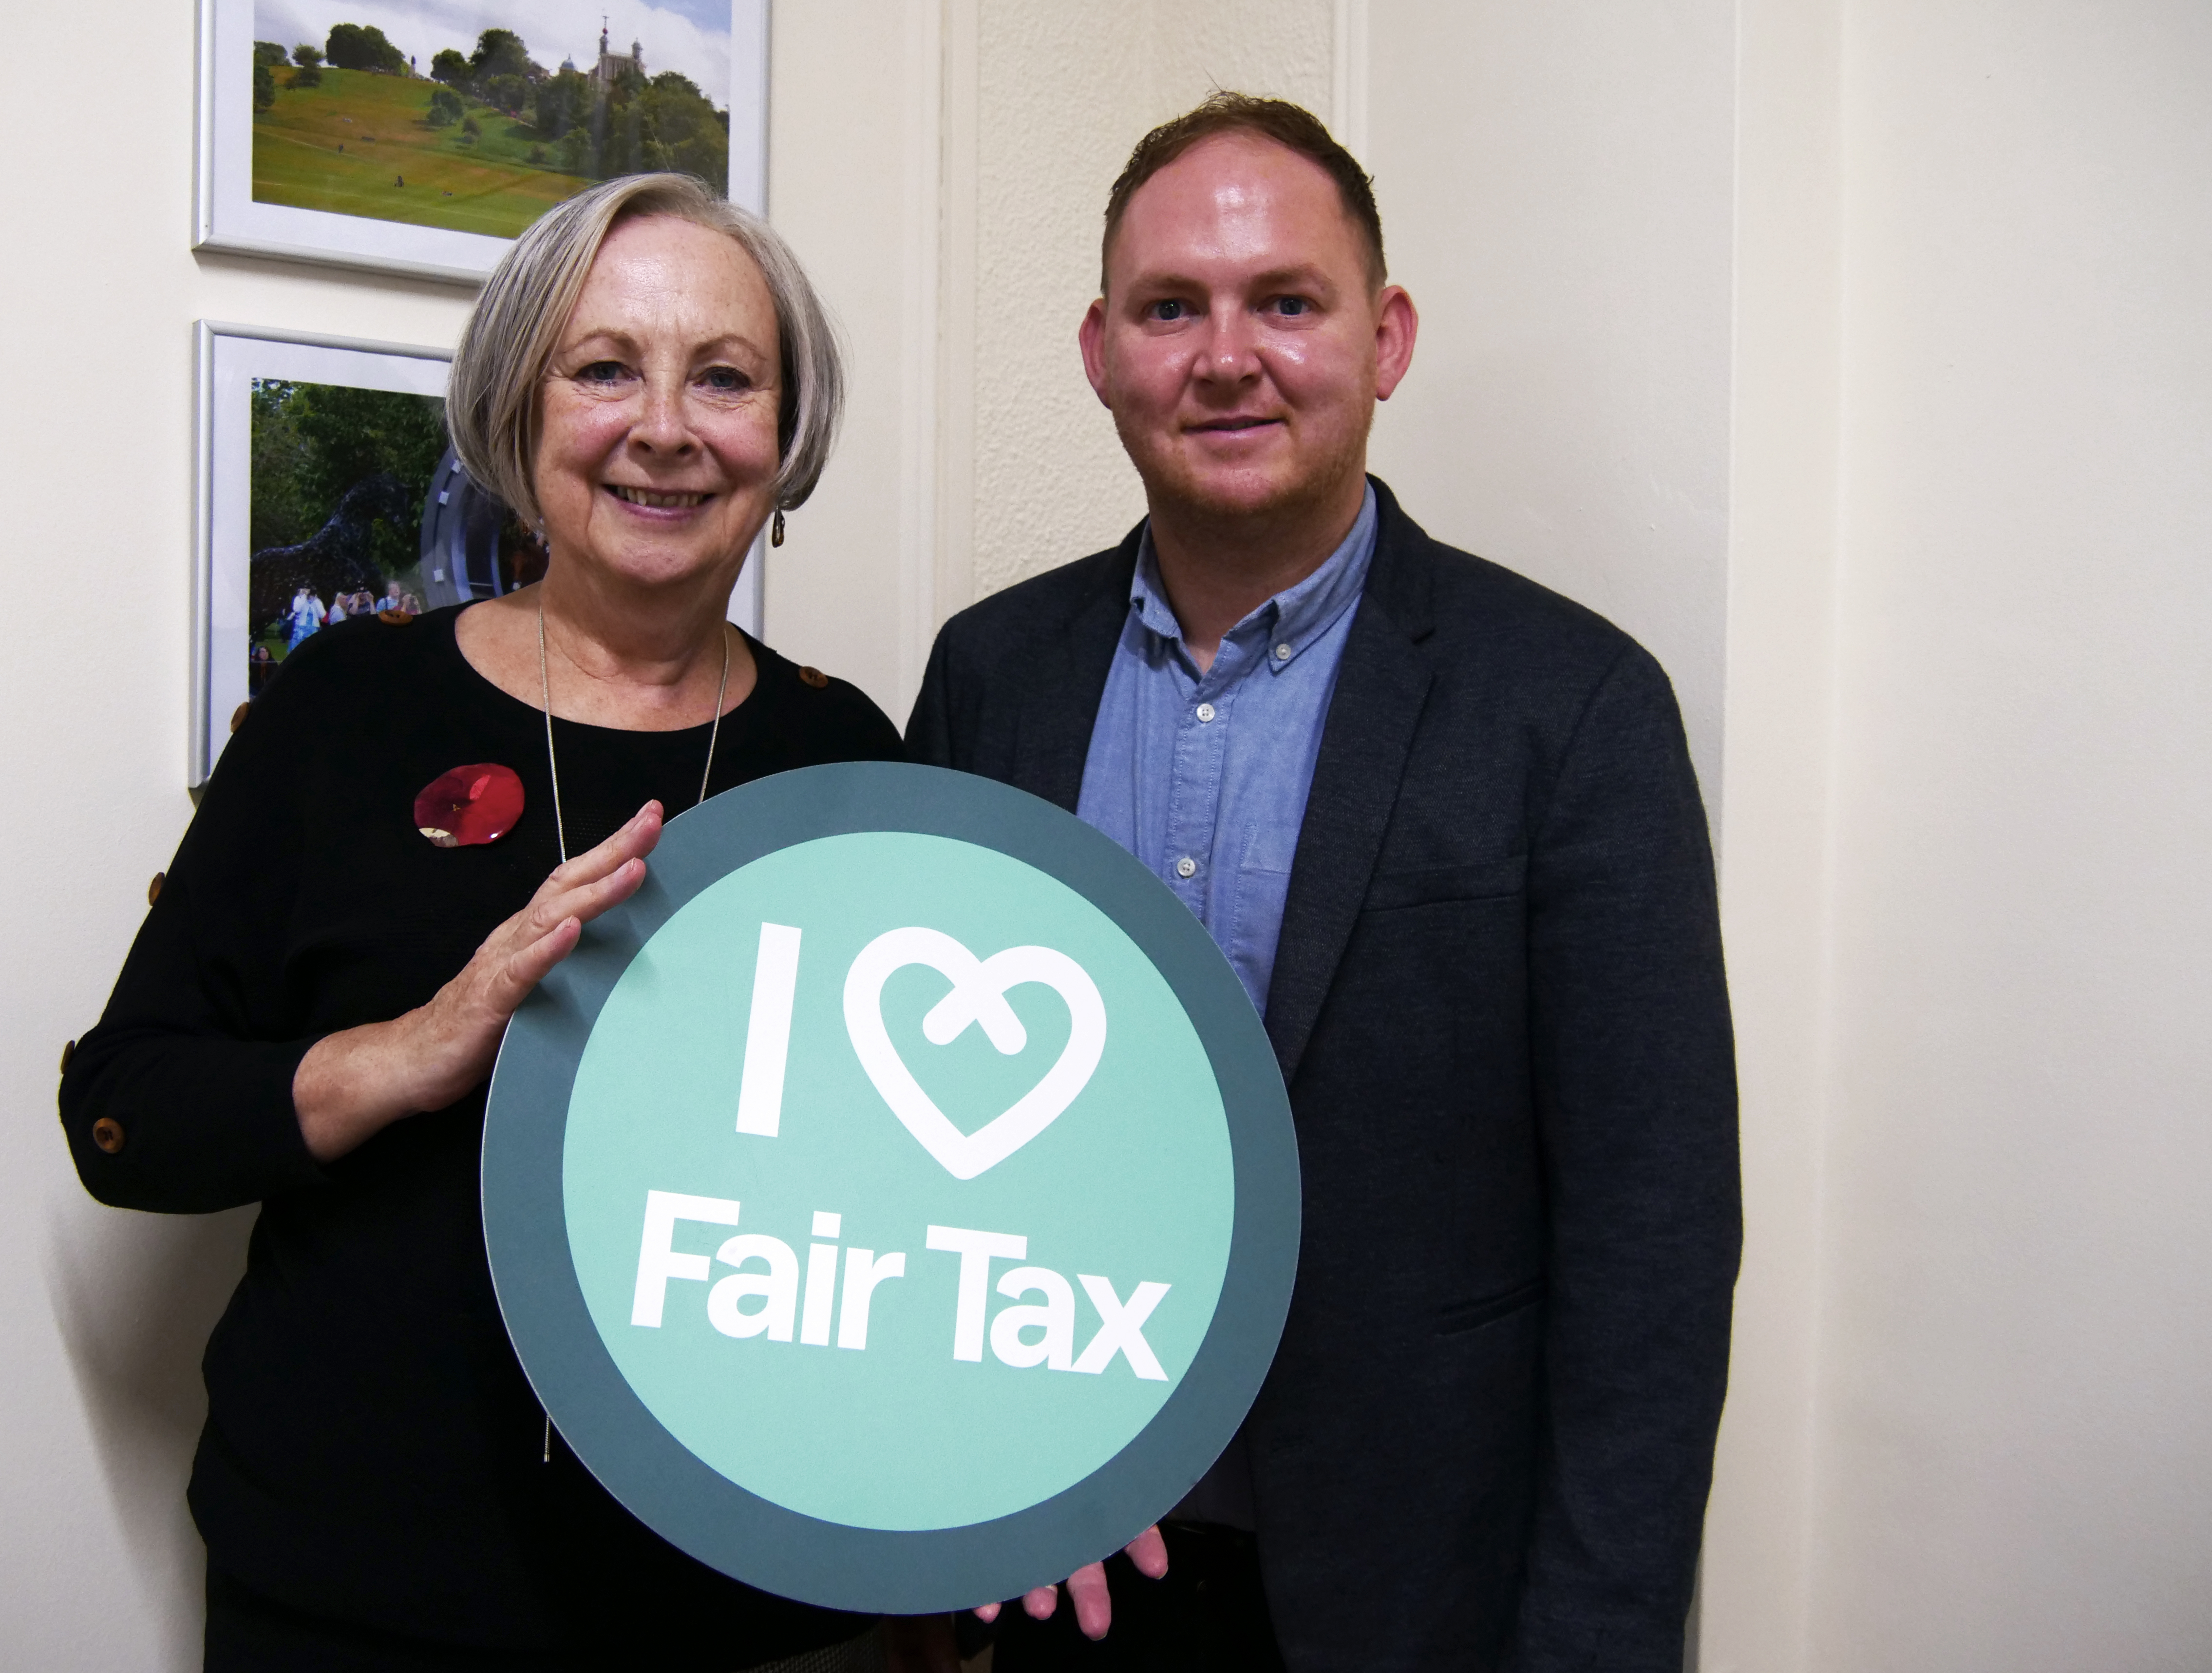 Cllrs Thorpe and Grice show support for fair tax